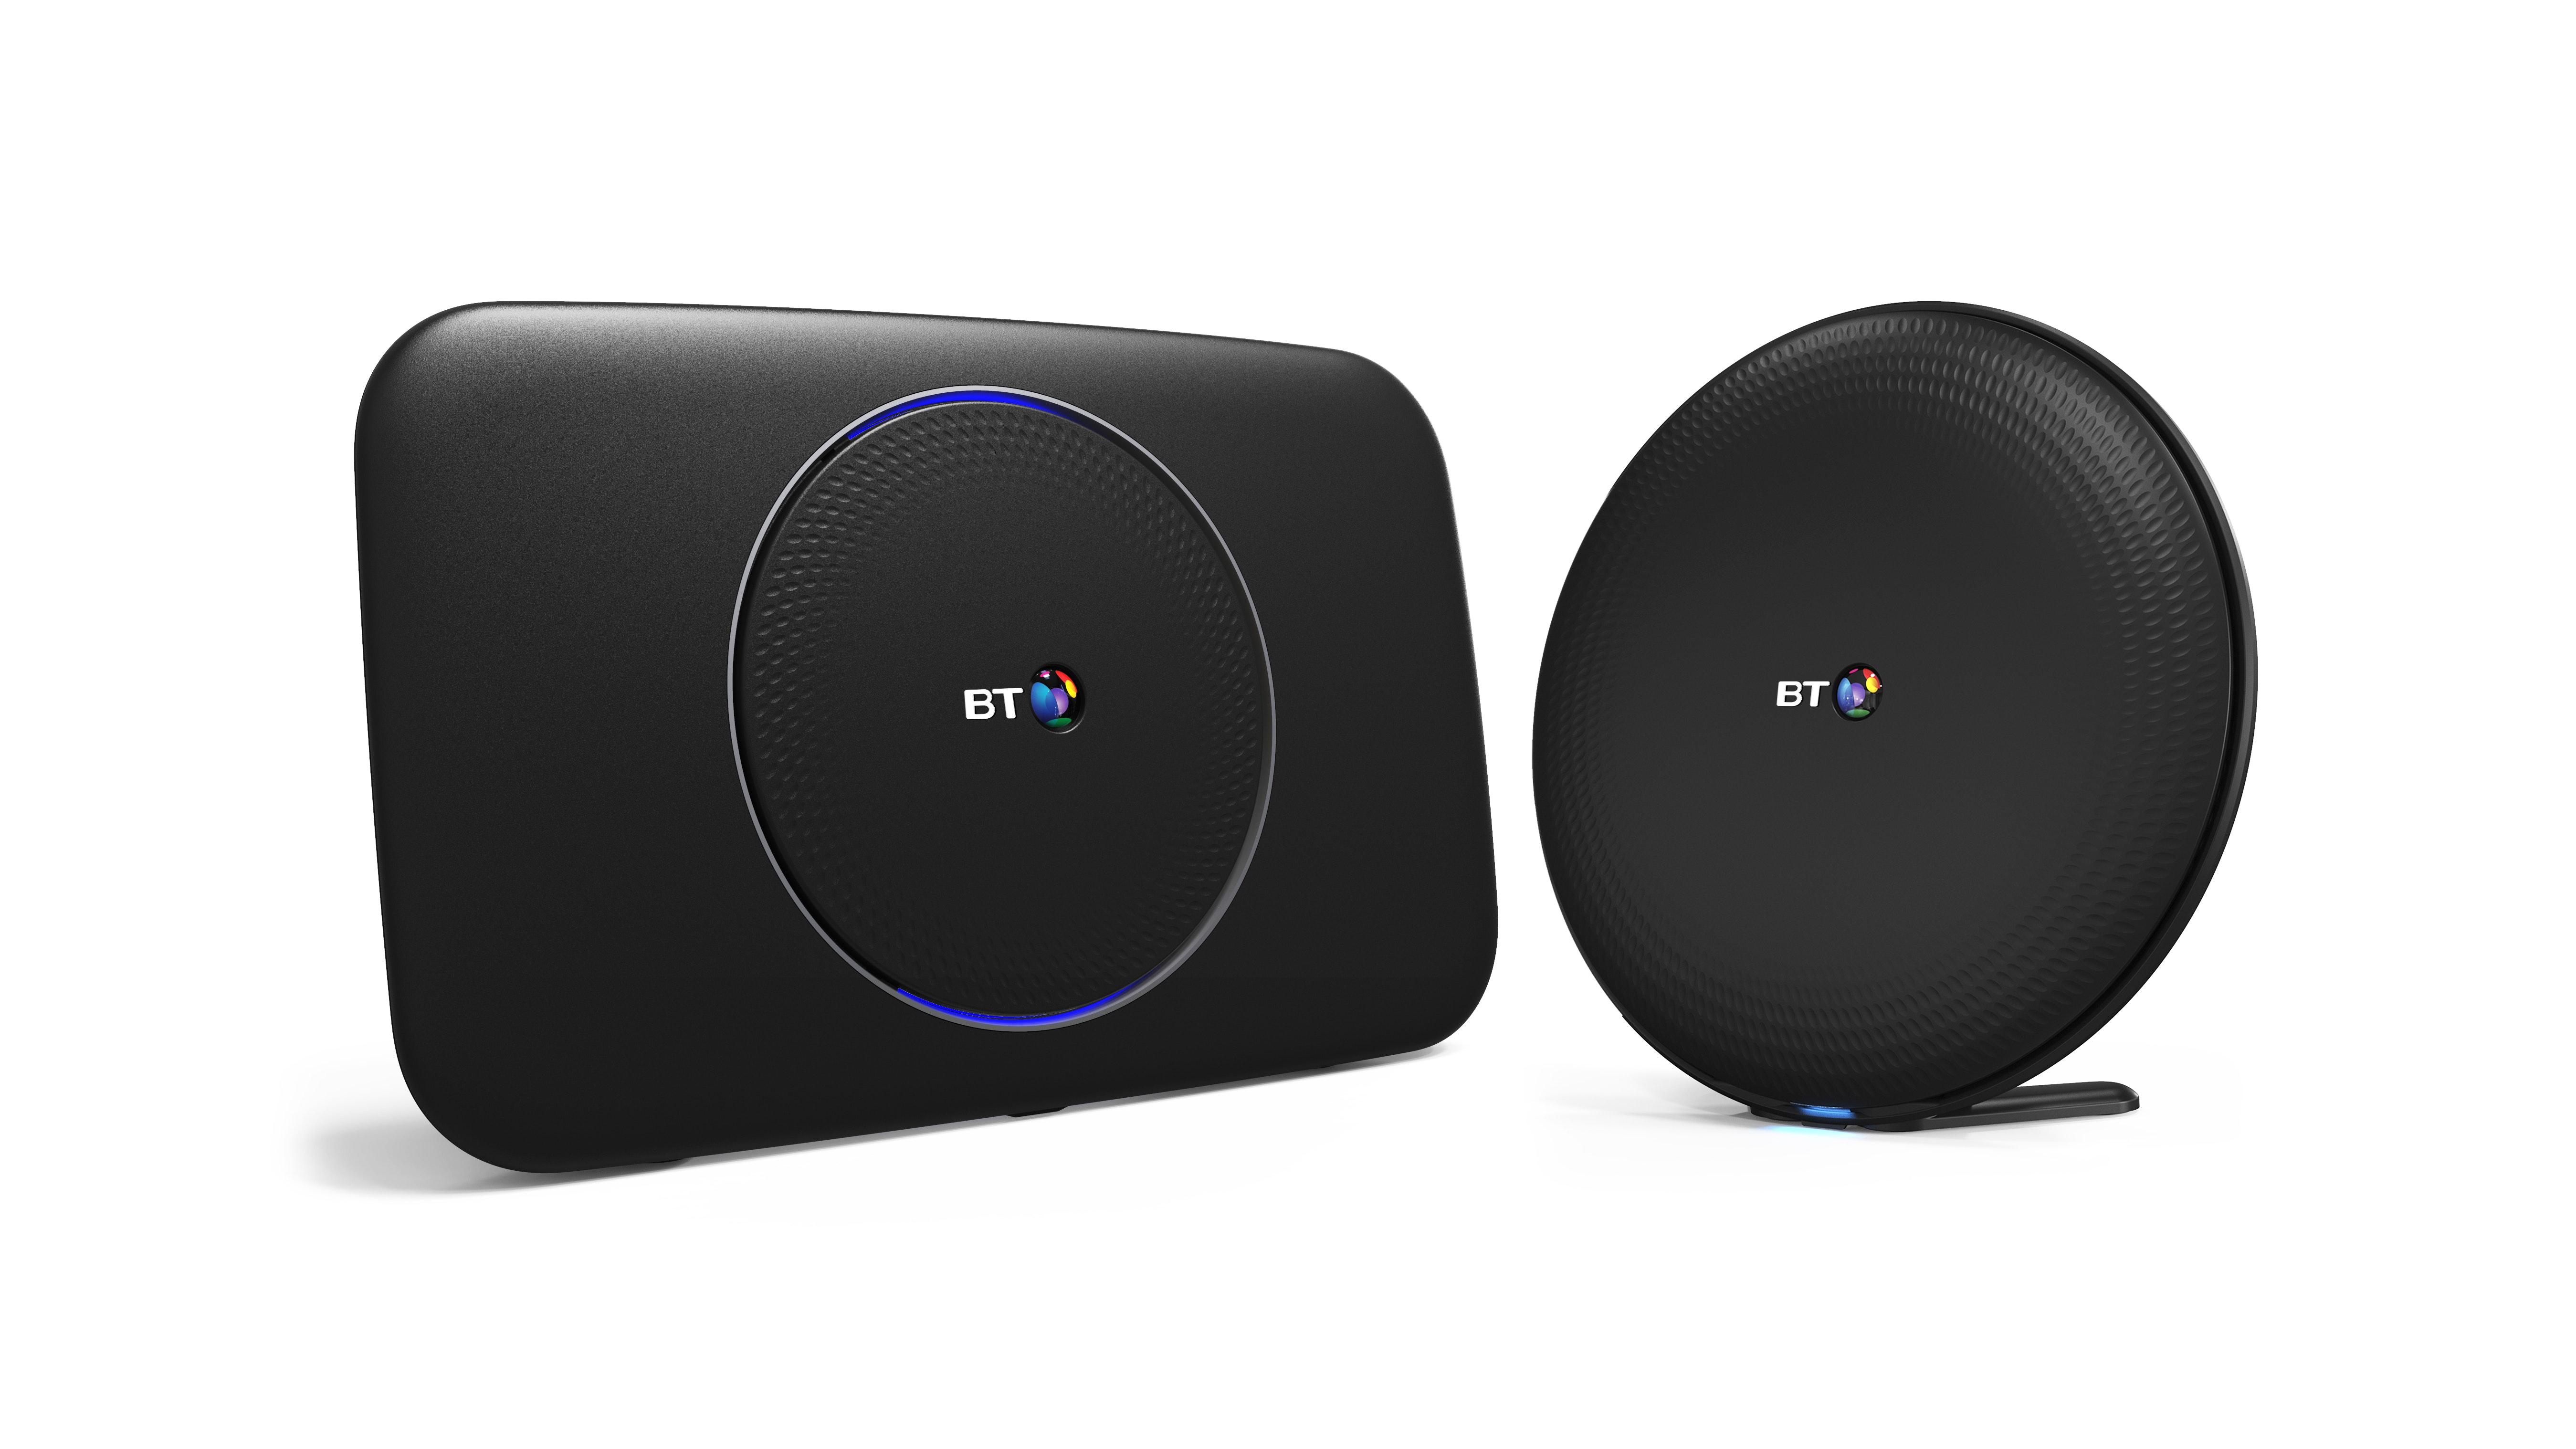 New Bt Plus With Complete Wi